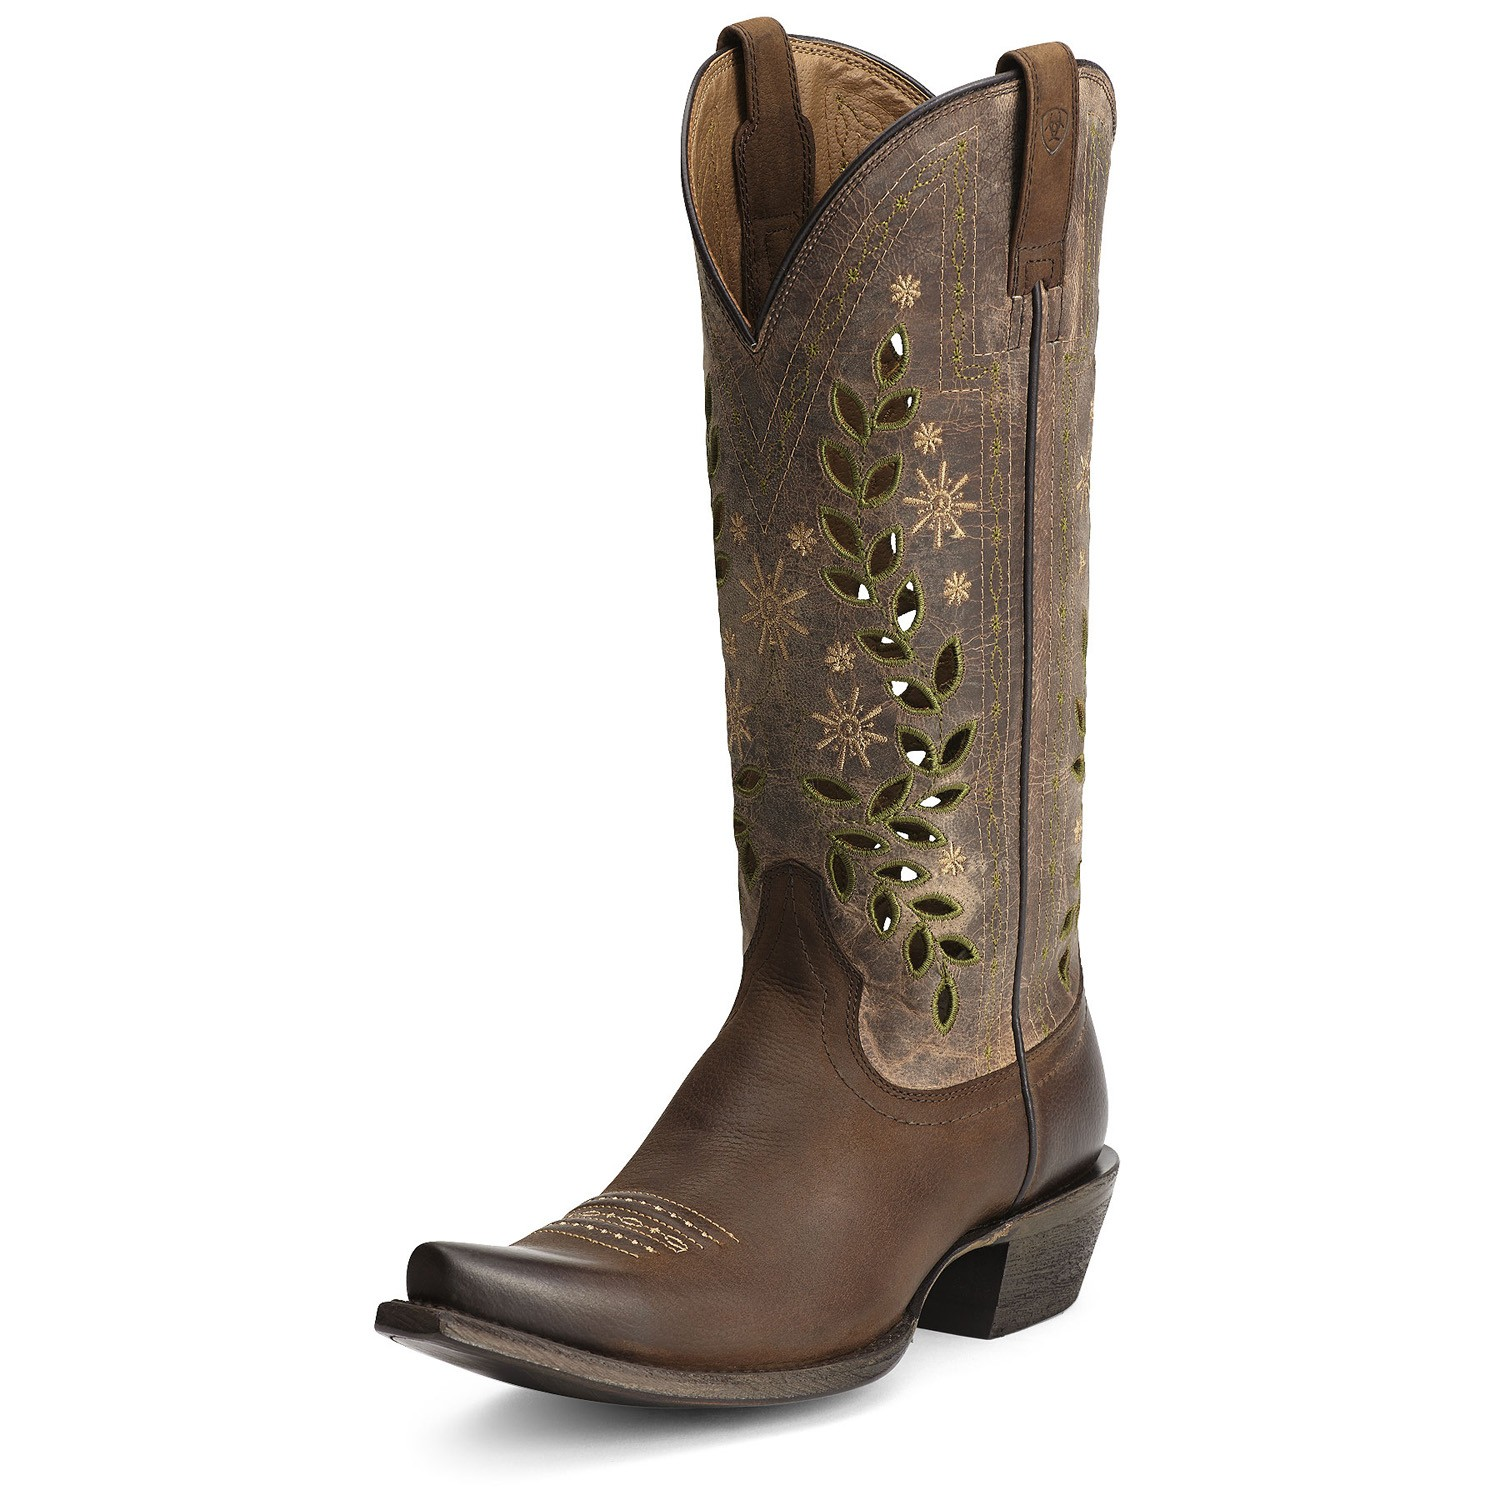 Ariat Boots Cowboy - Boot Yc